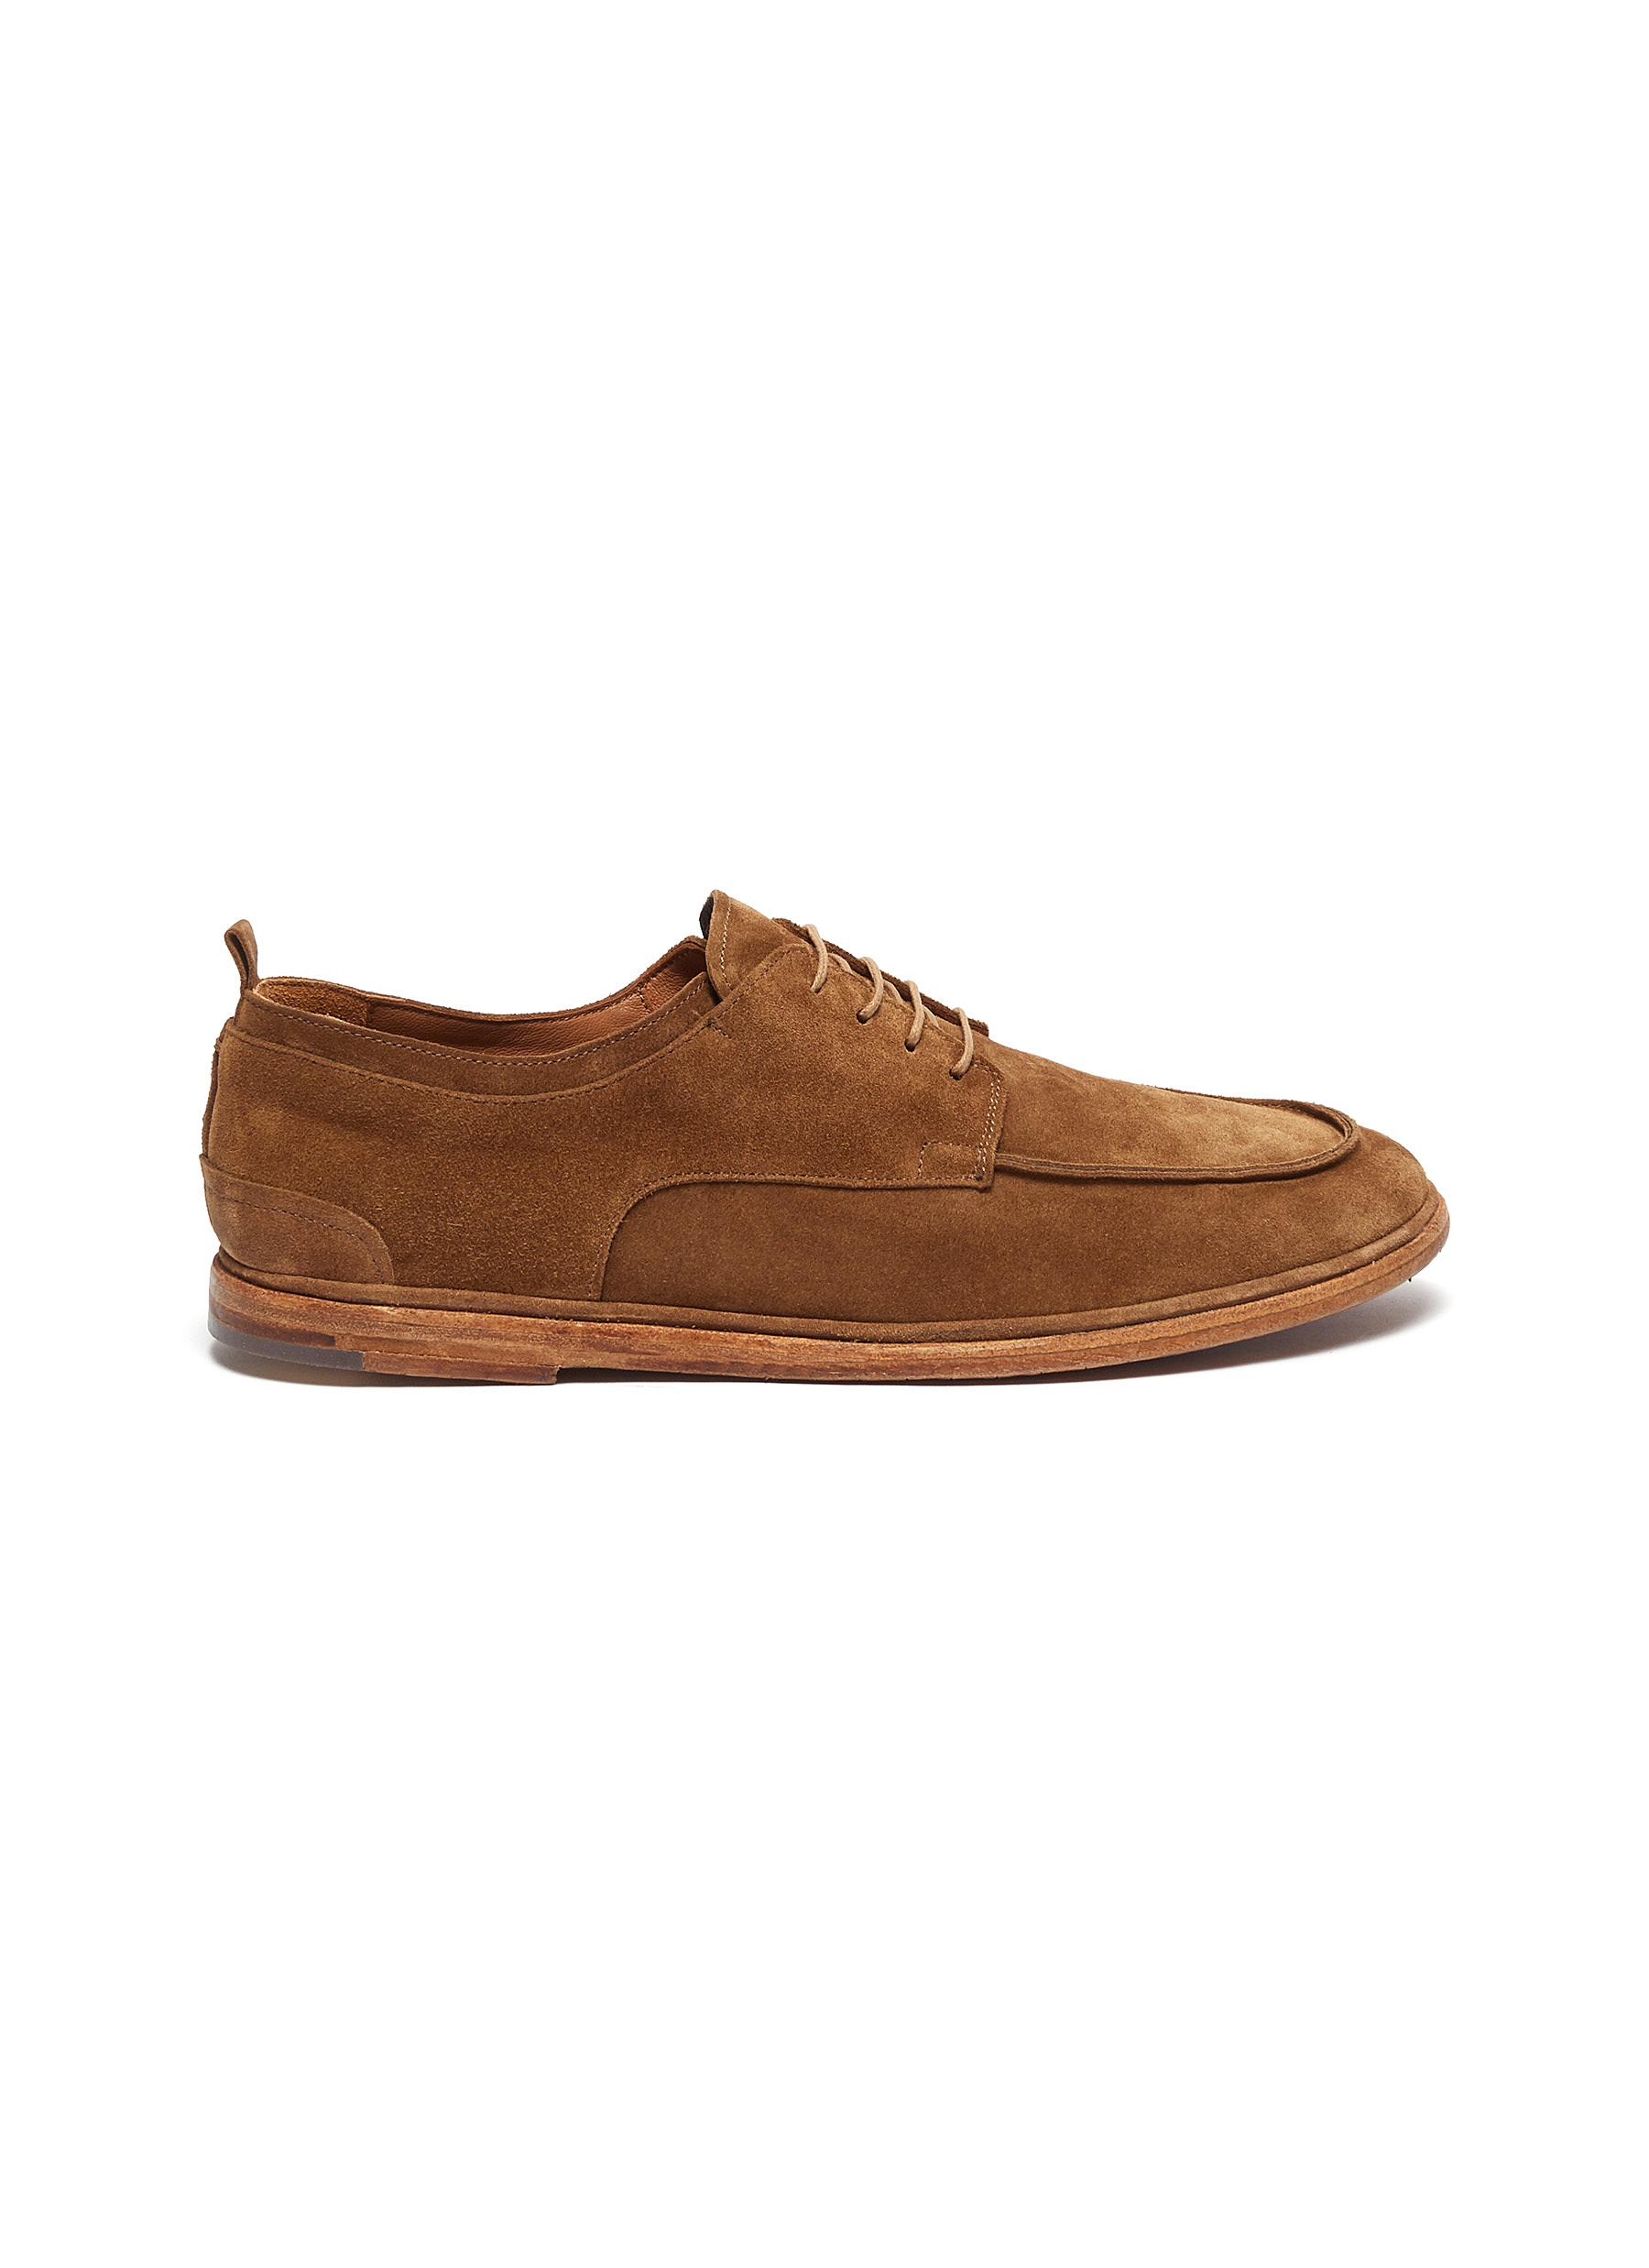 Suede soft derby shoes